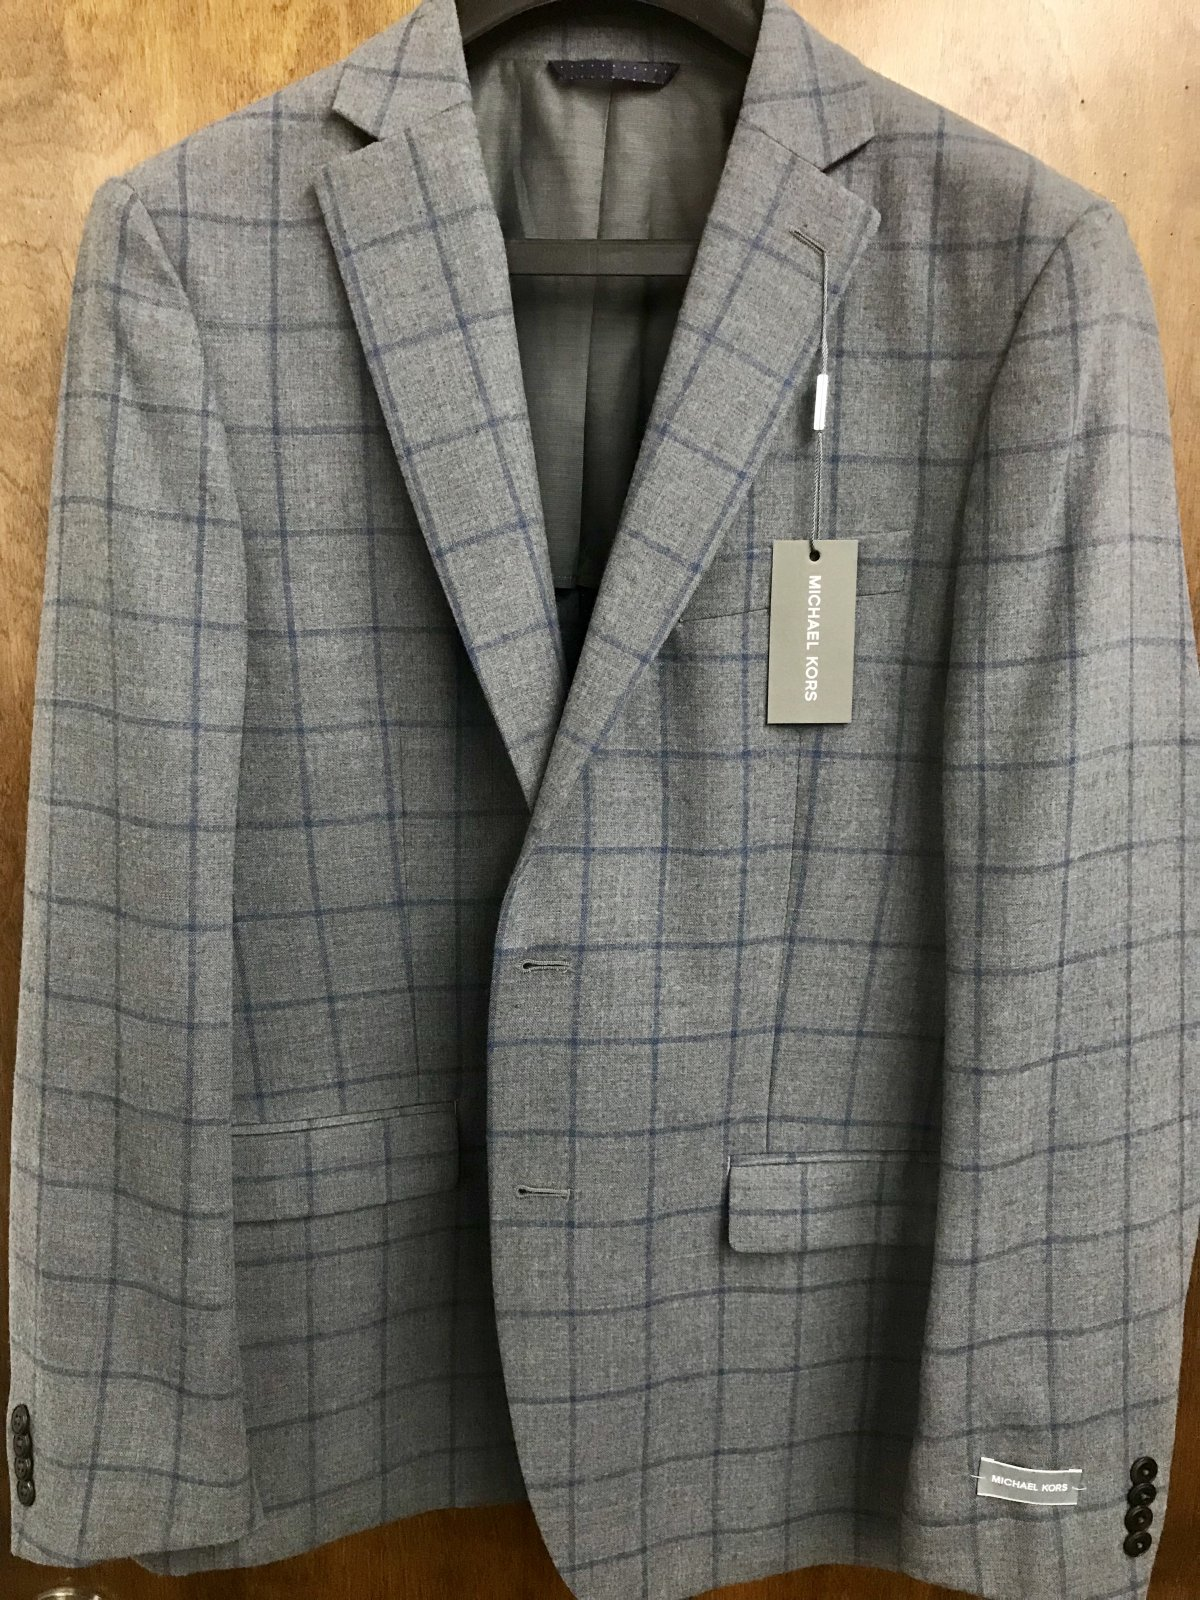 Michael Kors Grey/Blue Windowpane Sportcoat KNZ1181